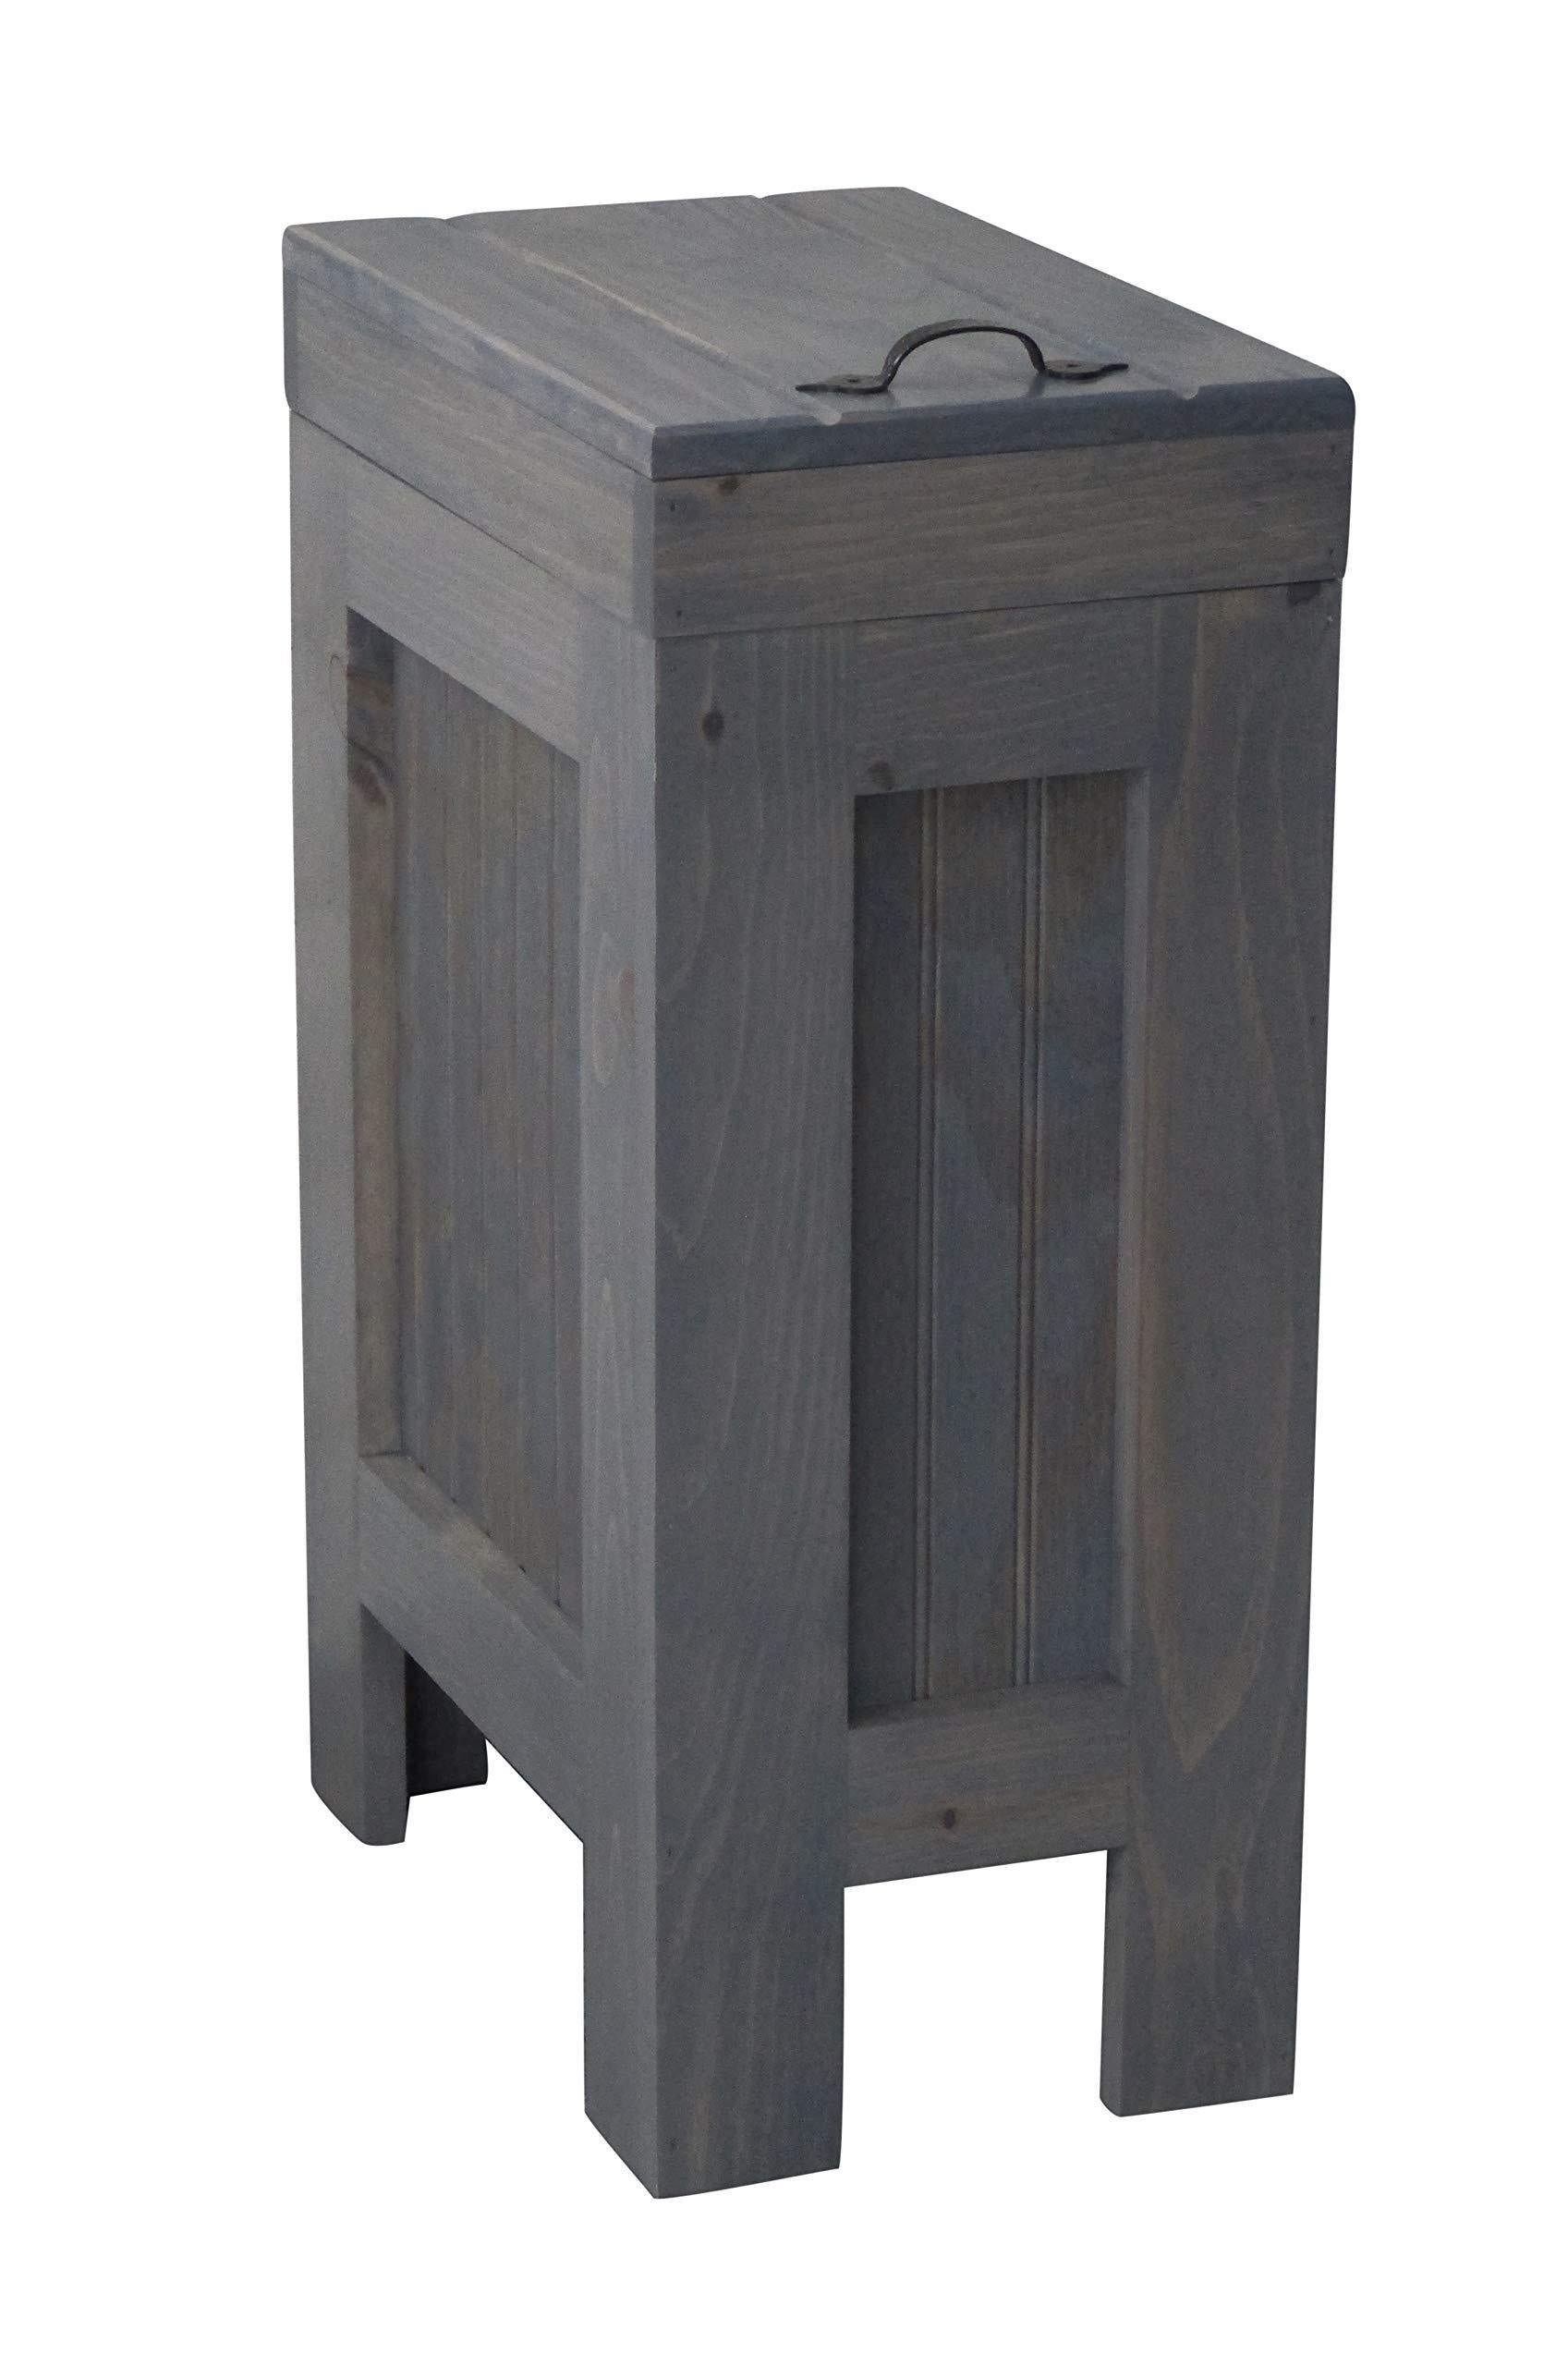 Try rustic wood trash bin kitchen trash can wood trash can trash cabinet dog food storage 13 gallon recycle bin gray stain metal handle handmade in usa by chris buffalowoodshop